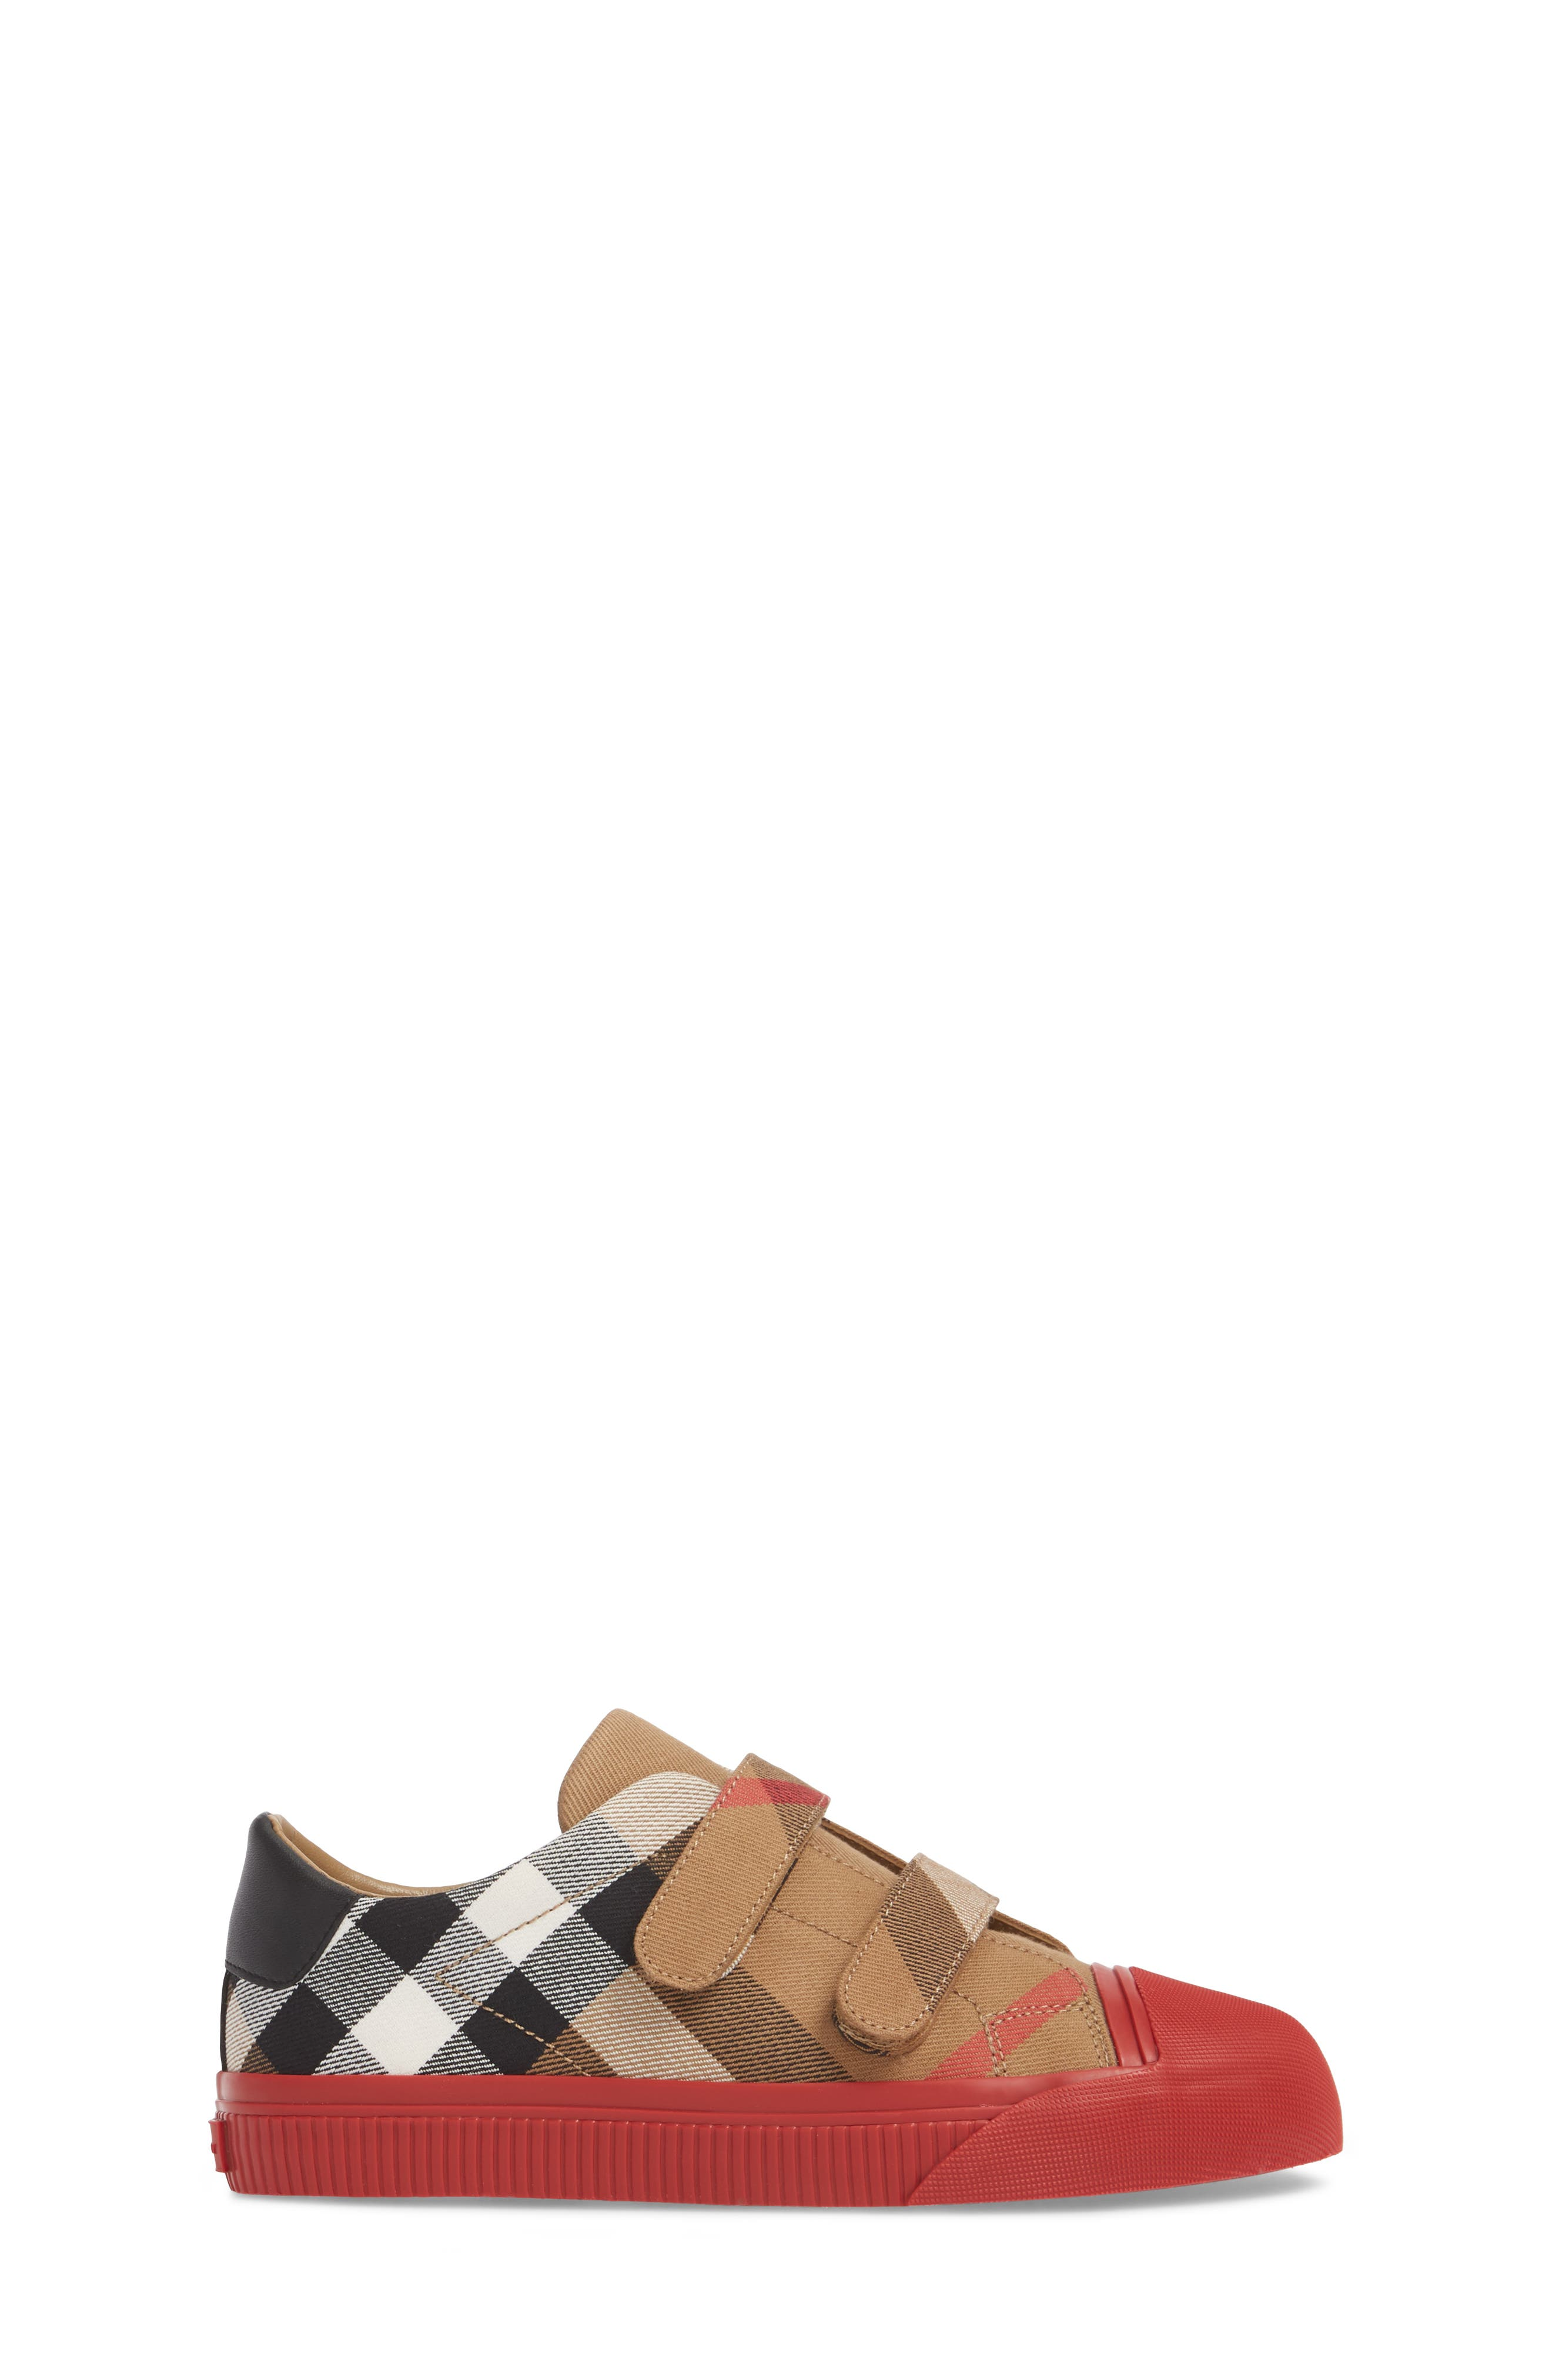 Belside Sneaker,                             Alternate thumbnail 3, color,                             Classic/ Parade Red